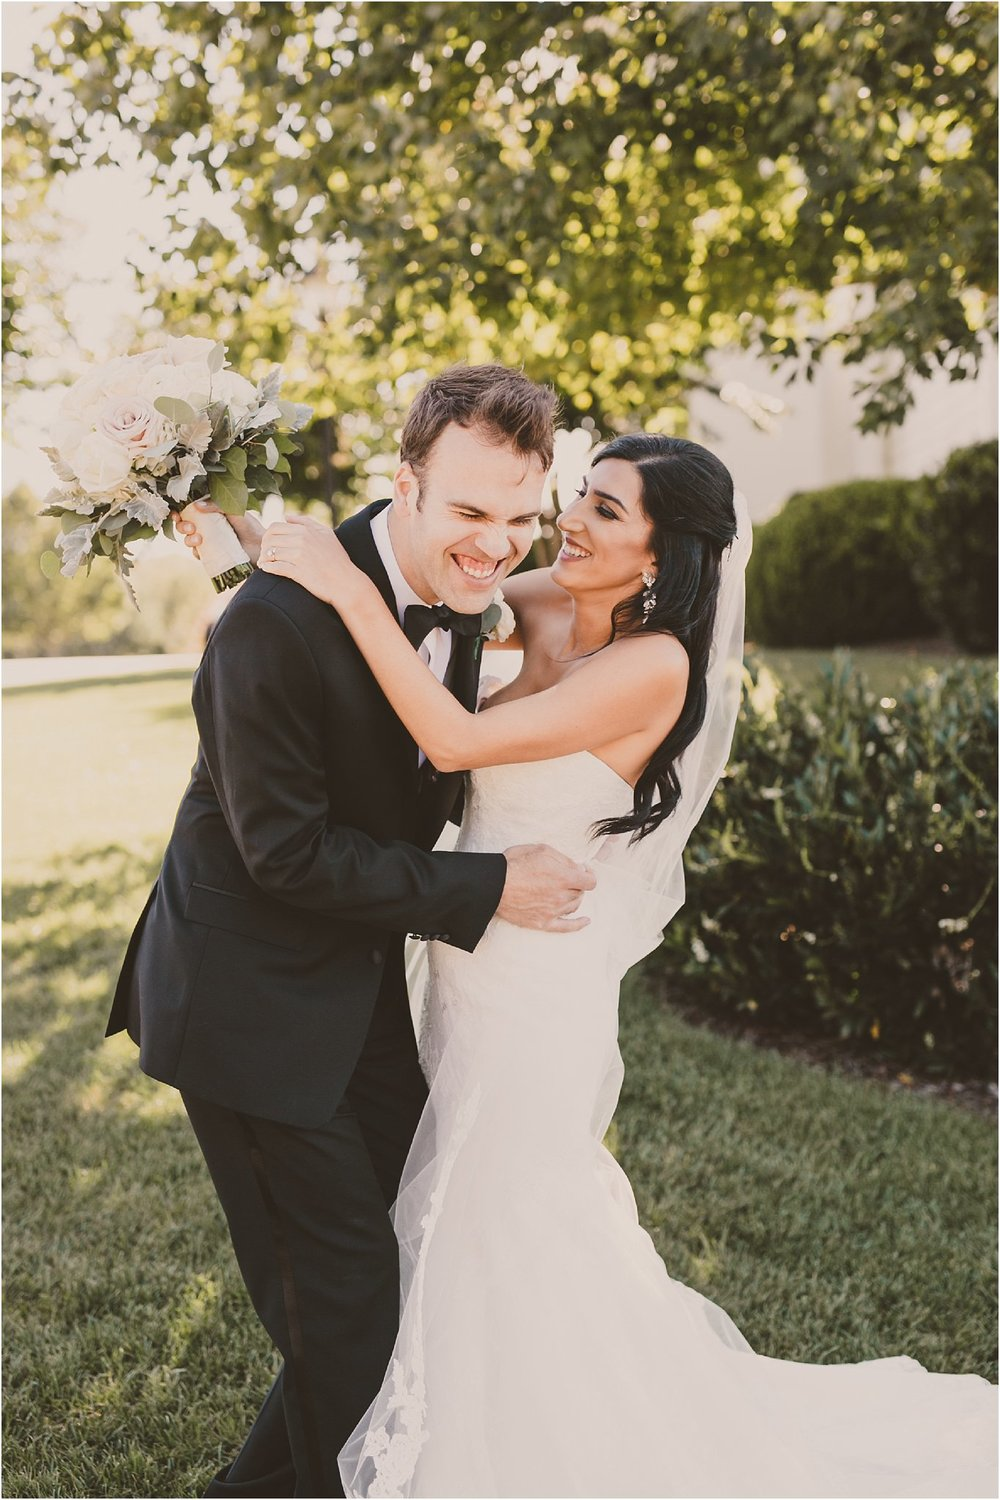 PattengalePhotography_BohoWedding_RichmondVirginia_Photographer_SevenSprings_Manor_Estate_Wedding_Mariam&Jay_Elegant_Fall_Bohemian_blush_gold_persian_glam_glamorous__0035.jpg